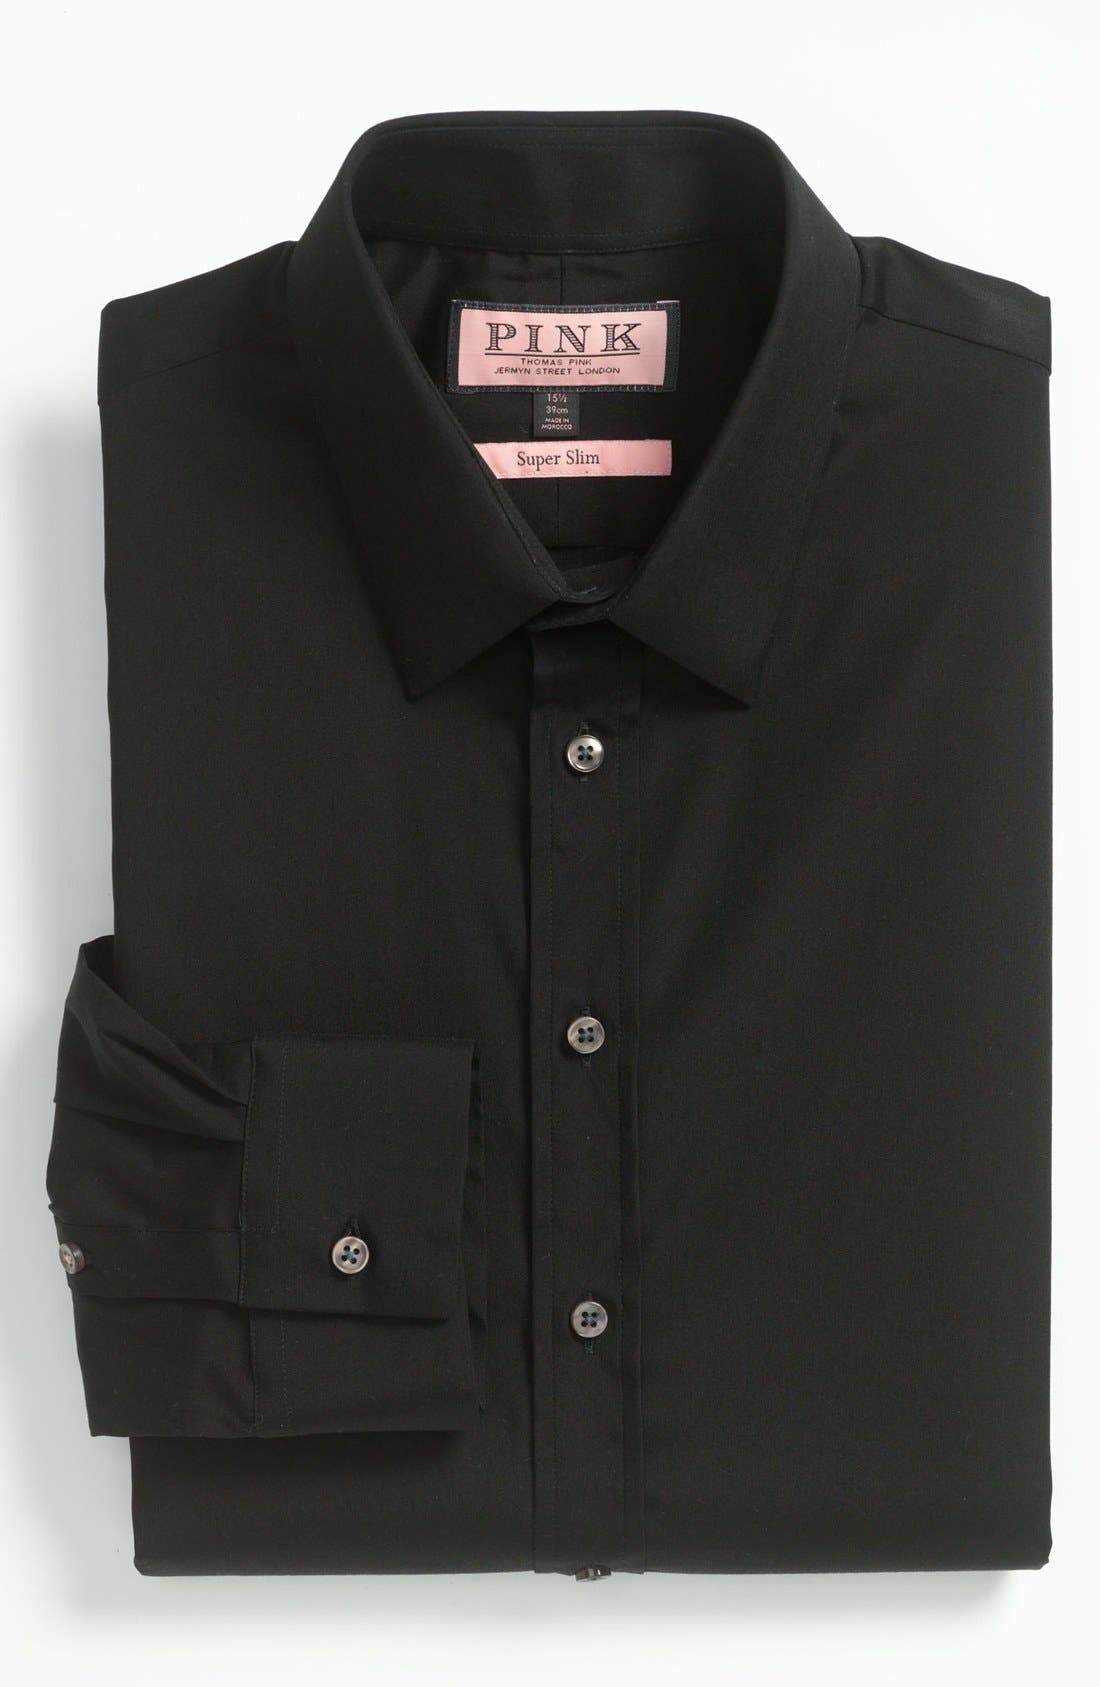 Alternate Image 1 Selected - Thomas Pink Super Slim Dress Shirt